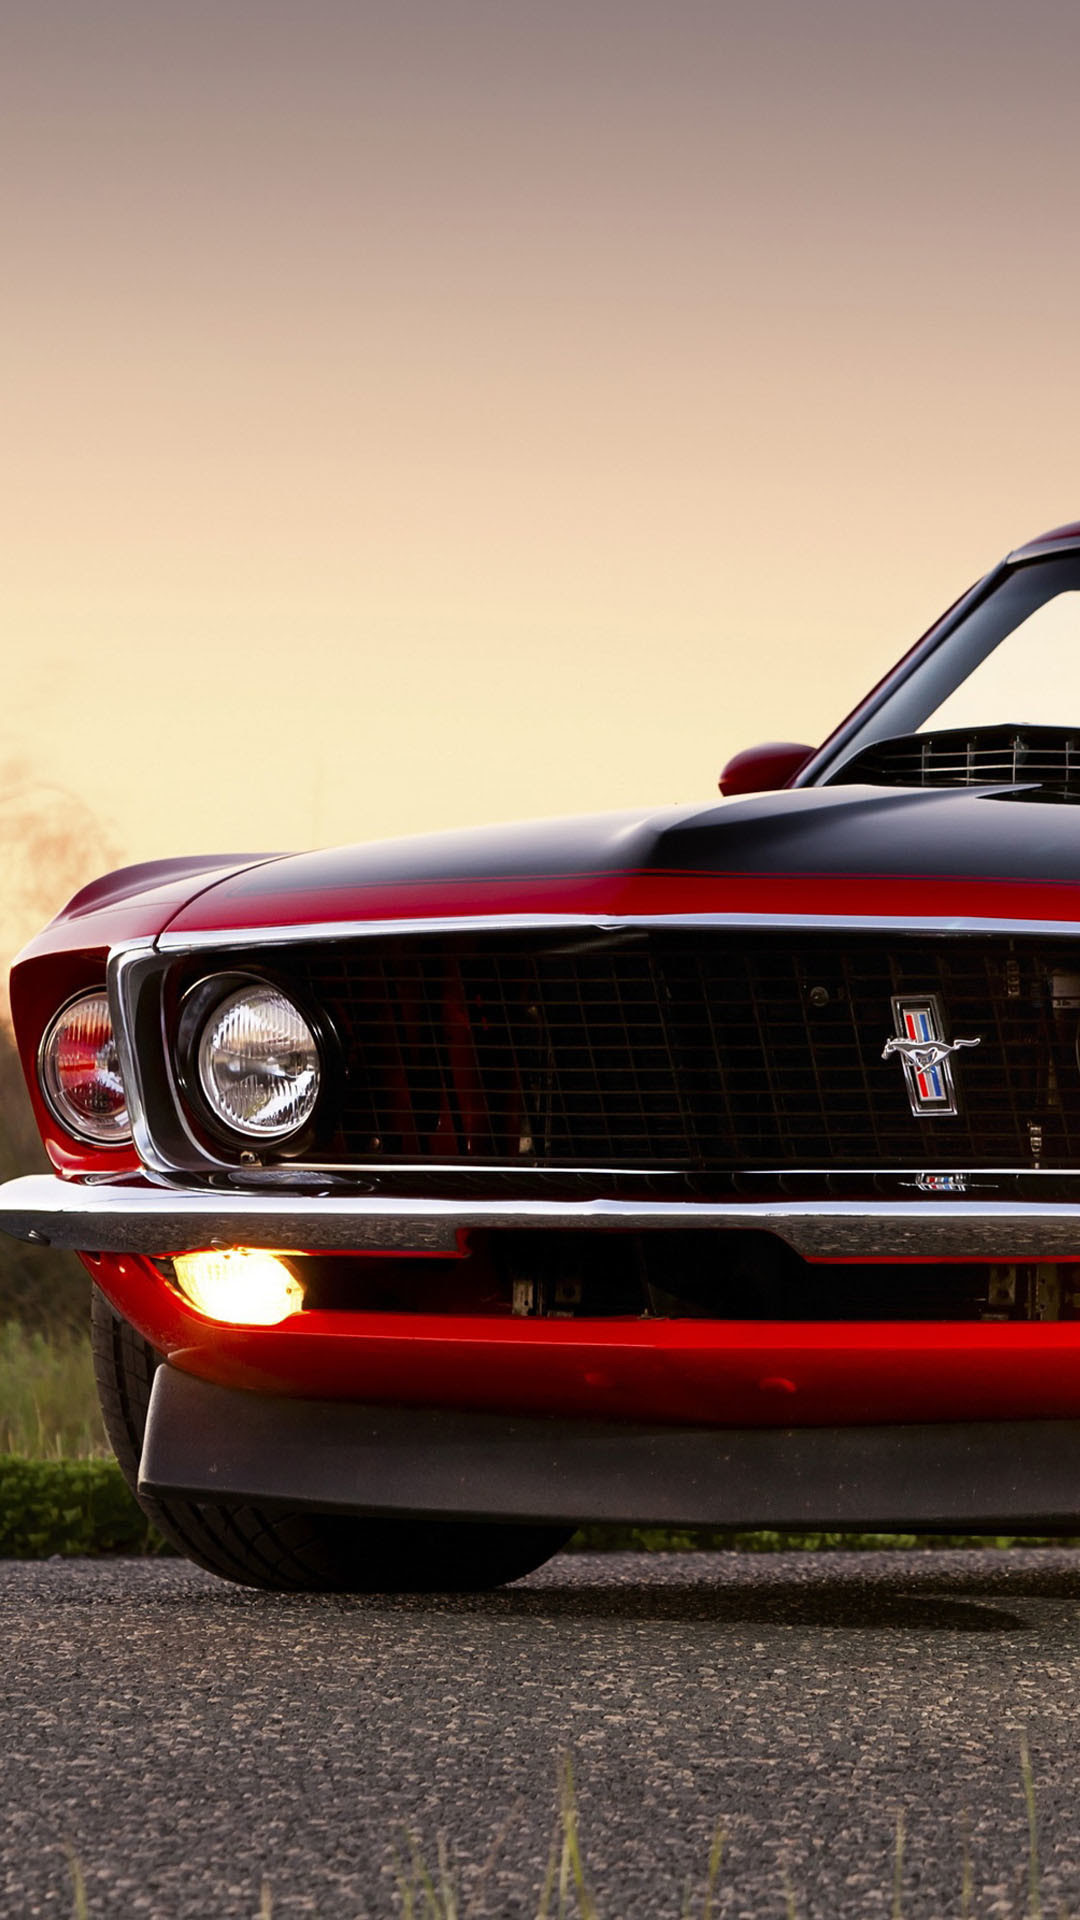 Ford Mustang 1969 Wallpaper Iphone Ford Mustang 2019